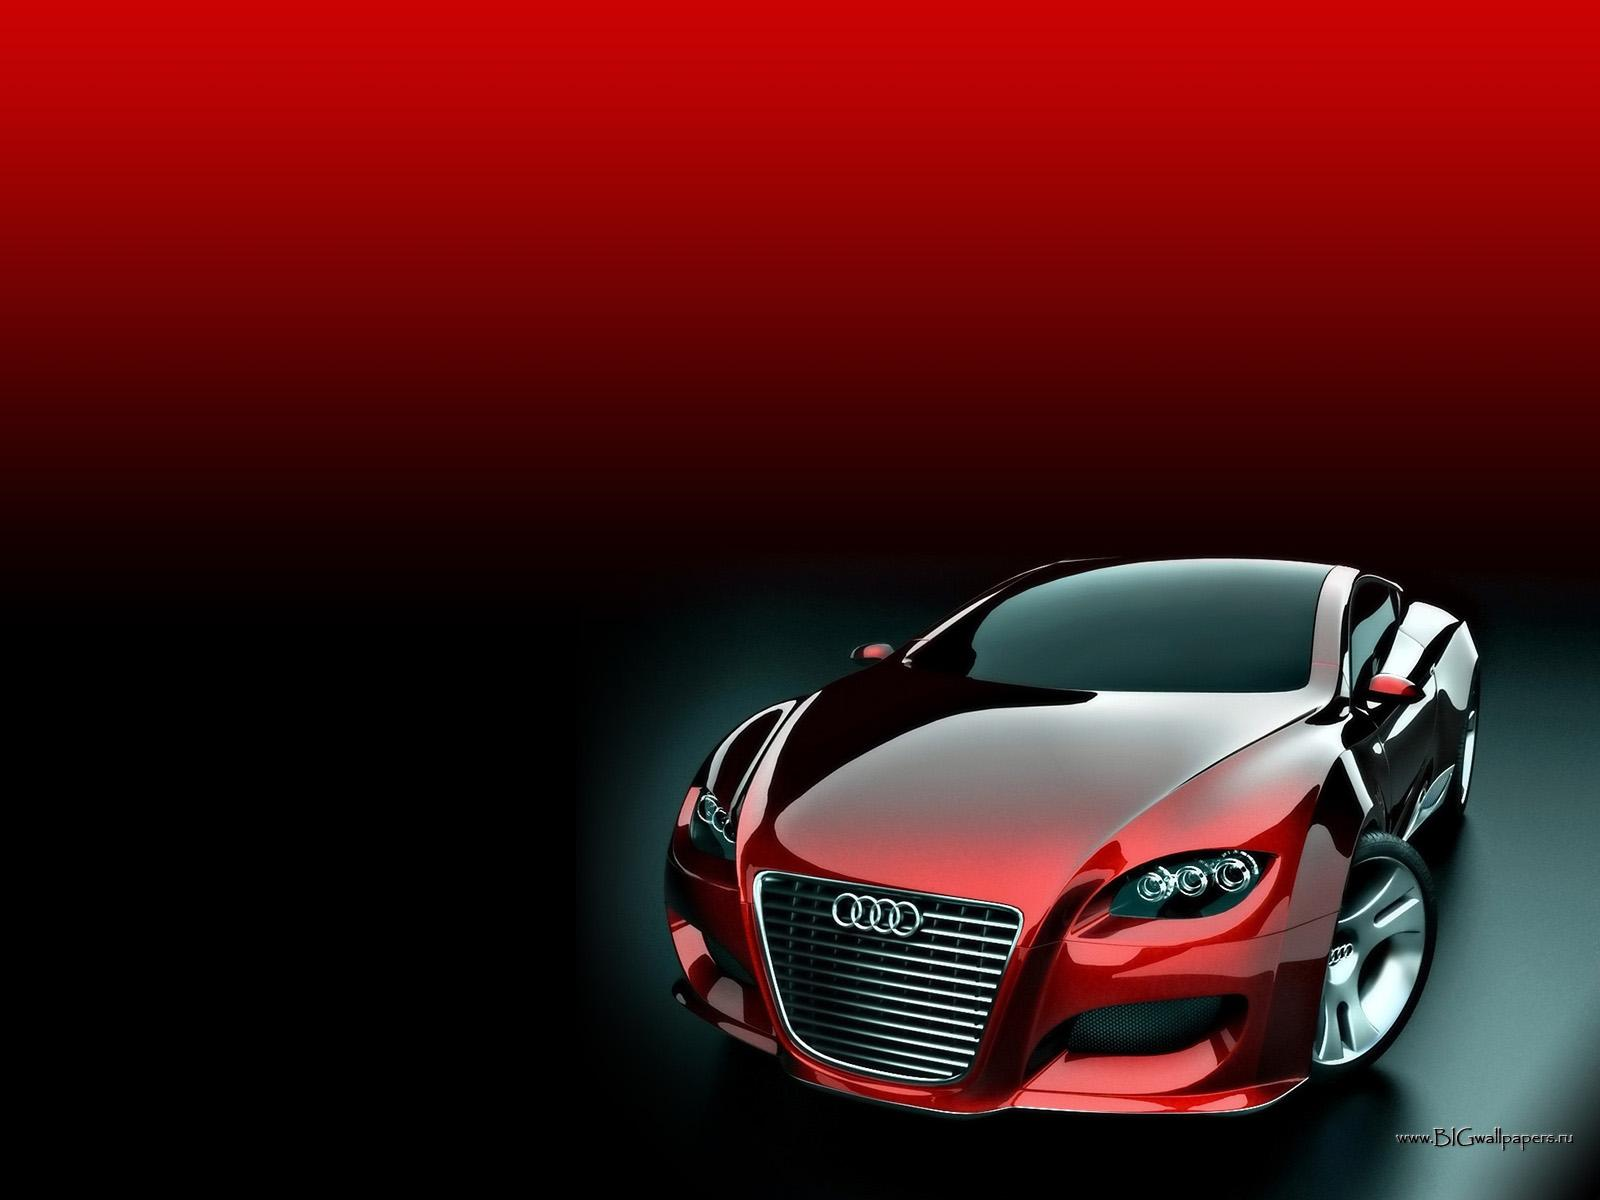 Cool Red Car Backgrounds 3   St Louis Auto Body Shop